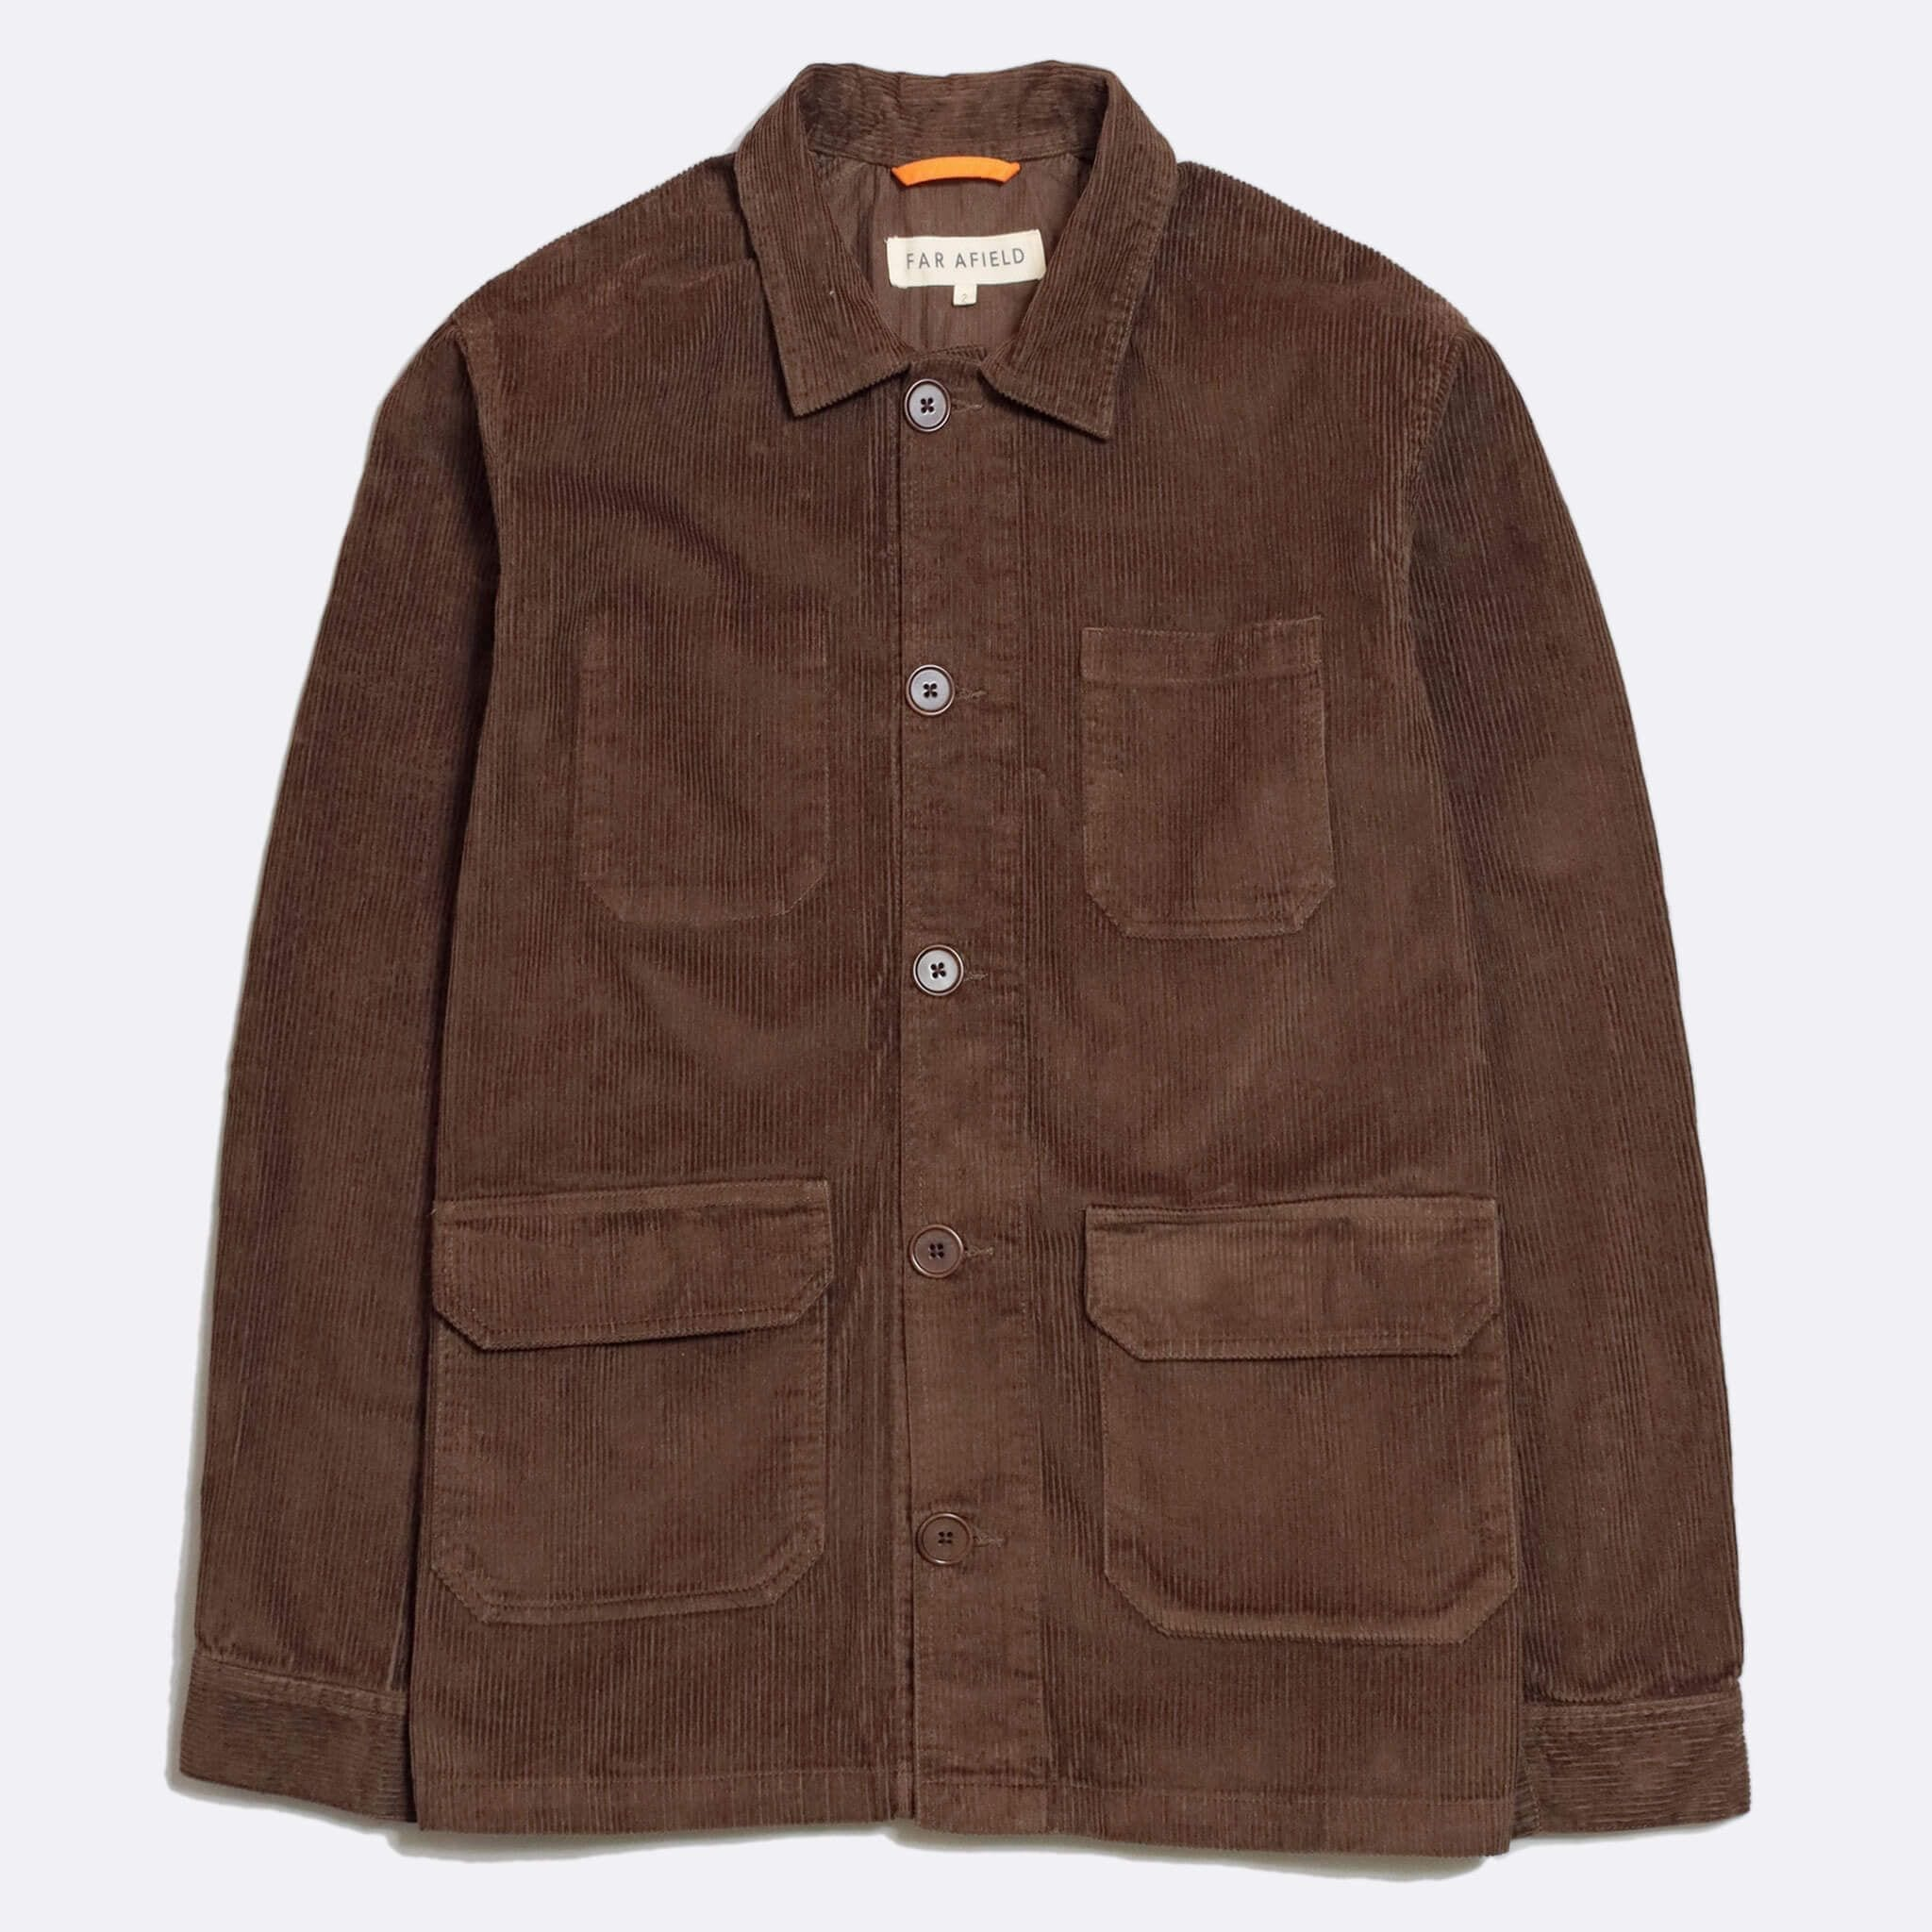 Far Afield Porter Jacket a Dark Brown Organic Cotton Twill Fabric Utility Overshirt Casual Work